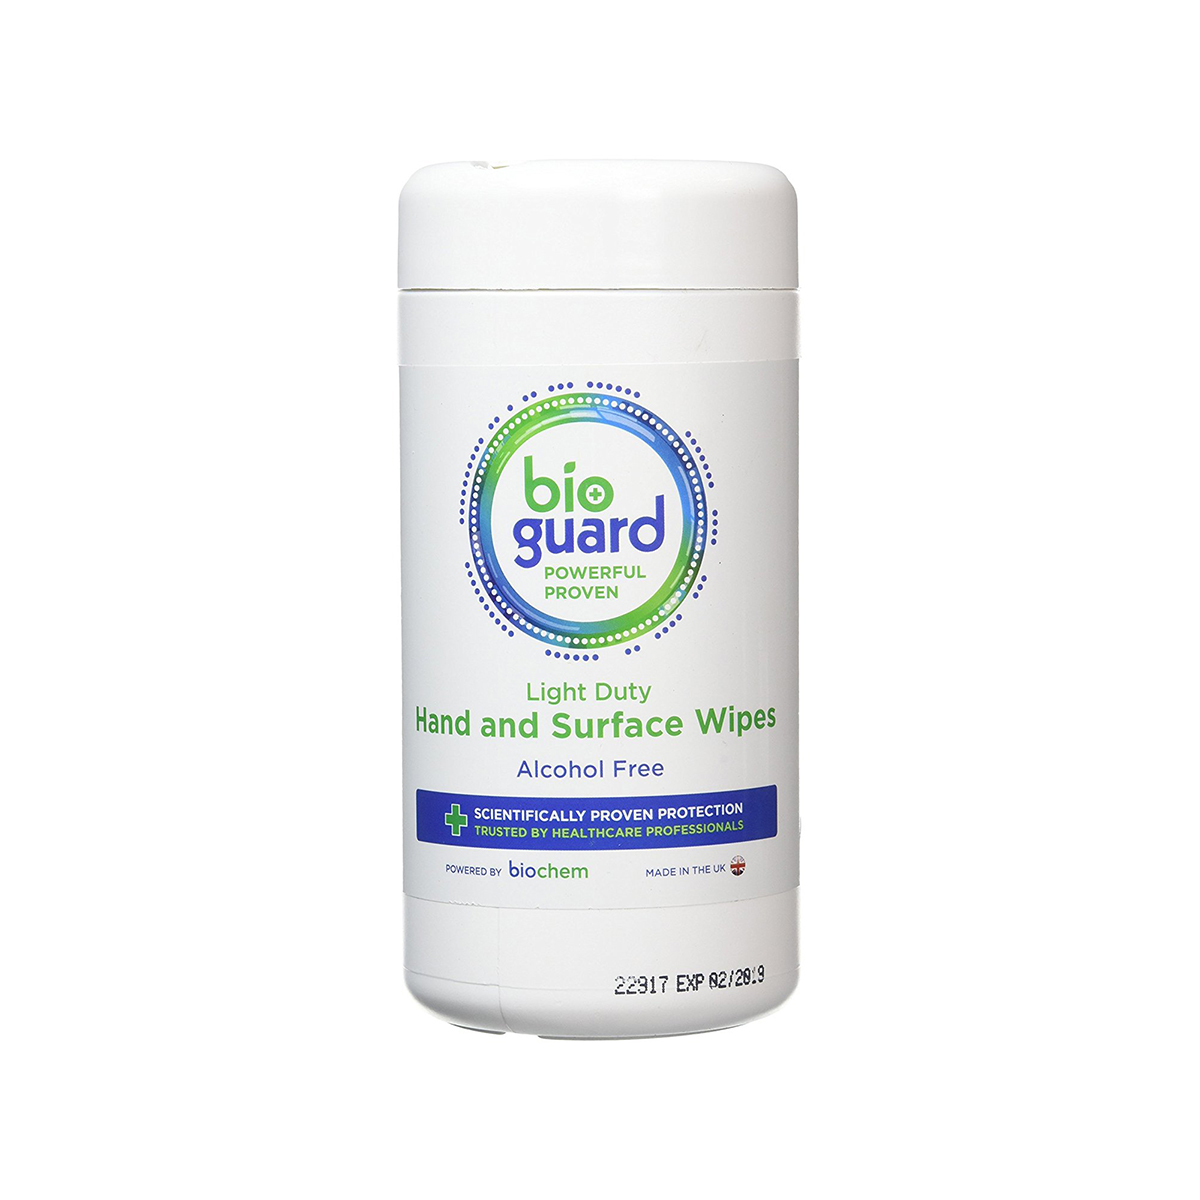 Tub of 200 Bioguard Light Duty Wipes